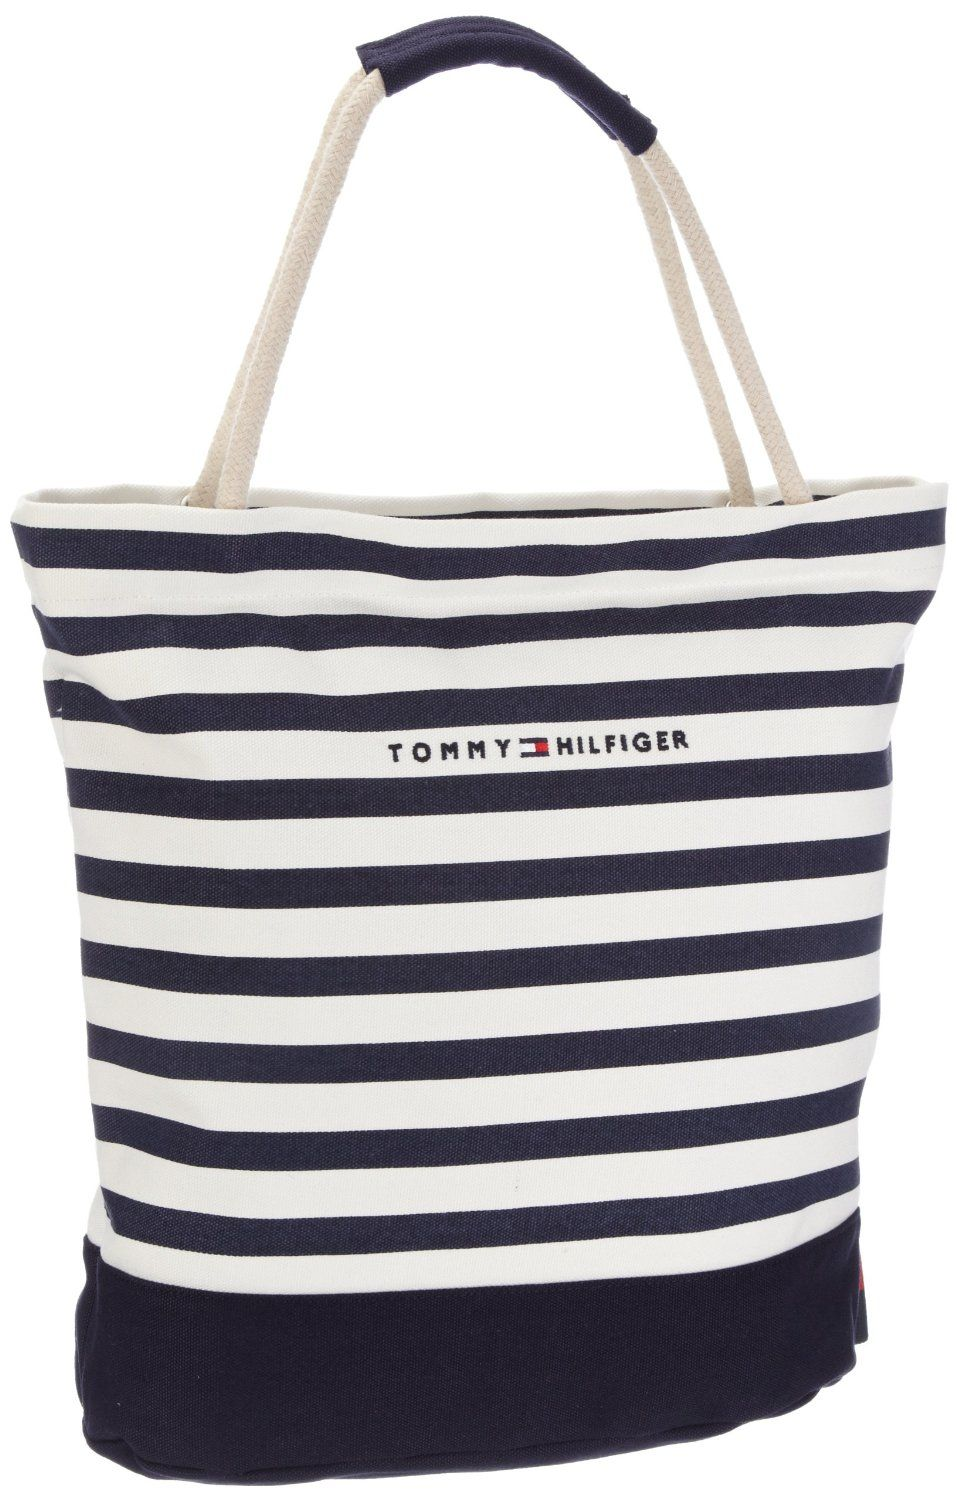 49da98baf04 Tommy Hilfiger Women s Sailor I Small Rope Tote Canvas Beach Bag   Amazon.co.uk  Shoes   Accessories